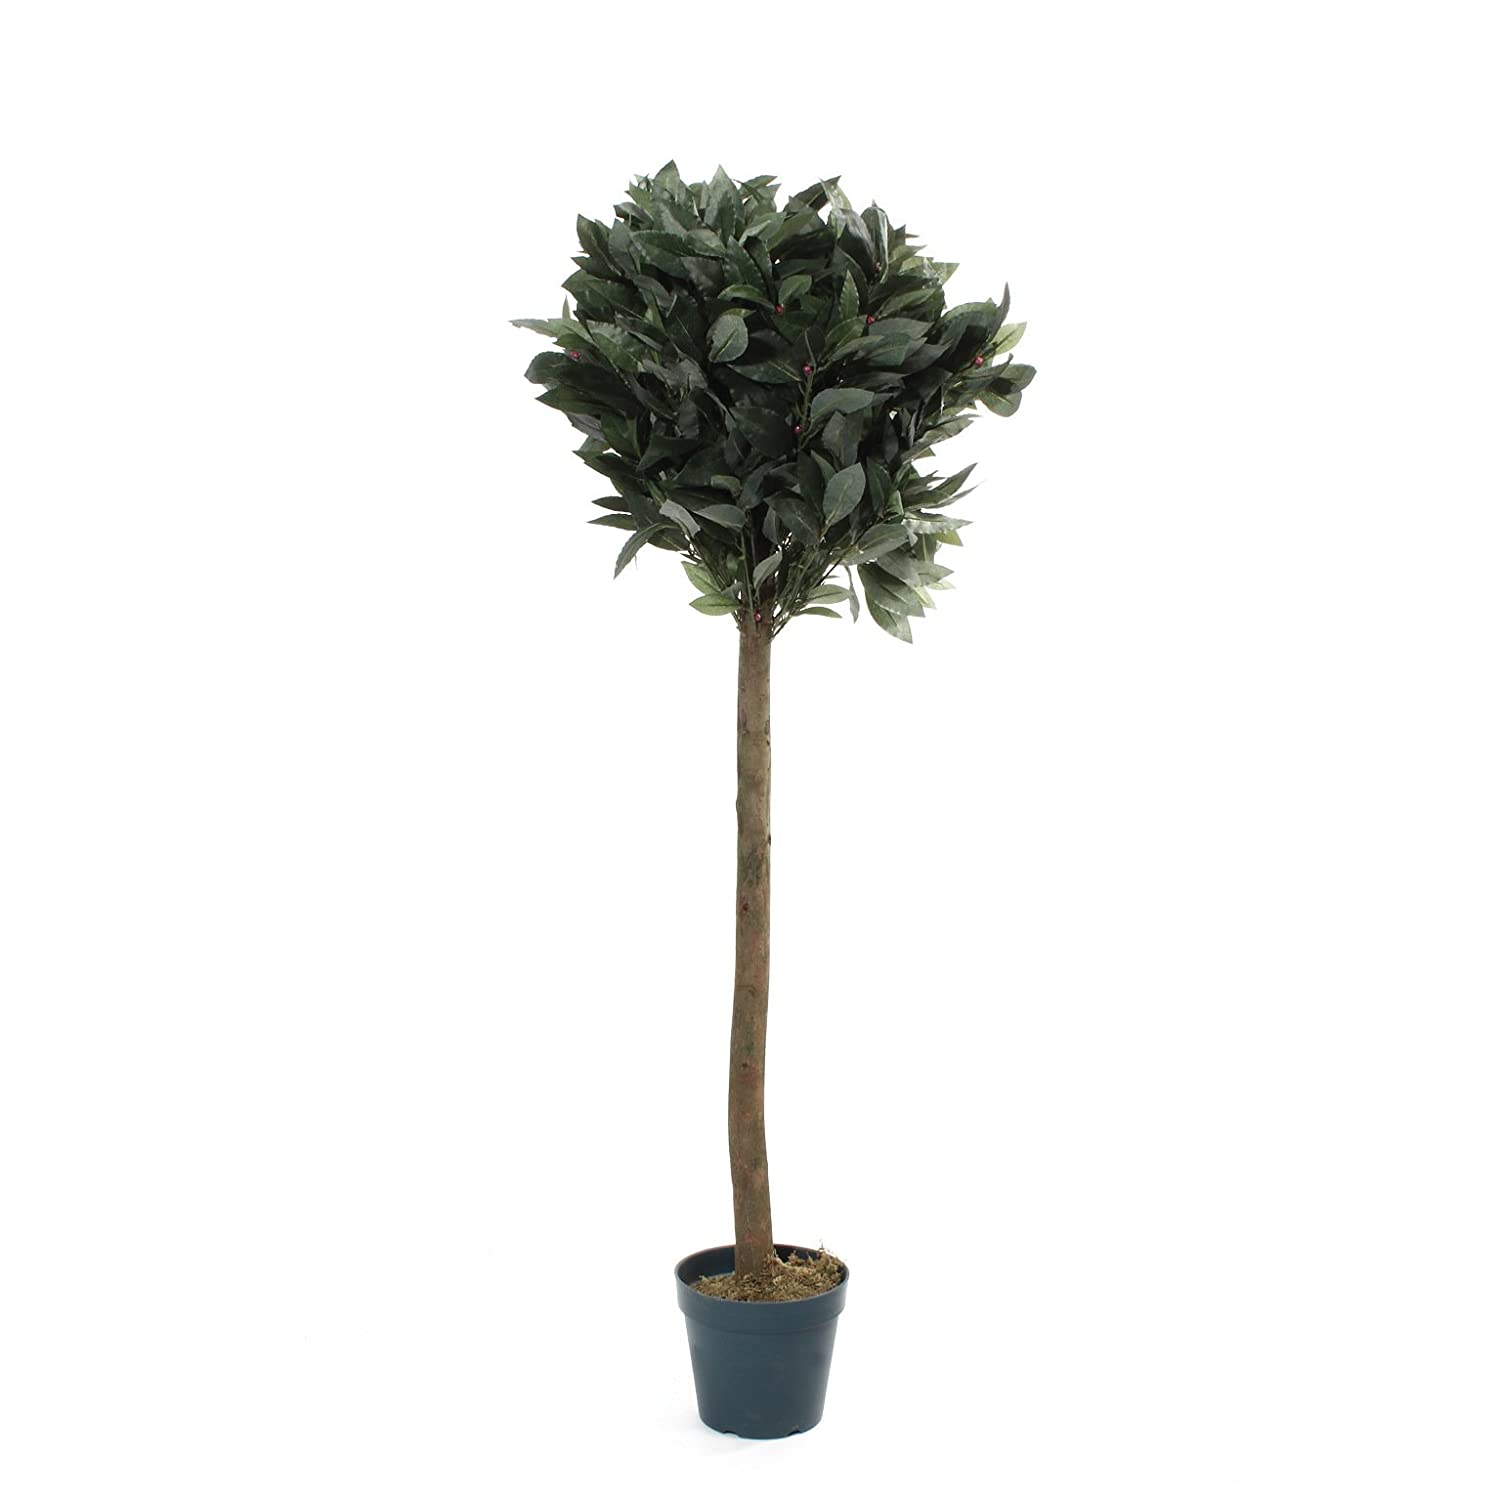 4ft Artificial Bay Tree Realistic Fake Green Pot Plant Leaves by De Vielle McLoughlinRS uk home MDA7Q DEV059892